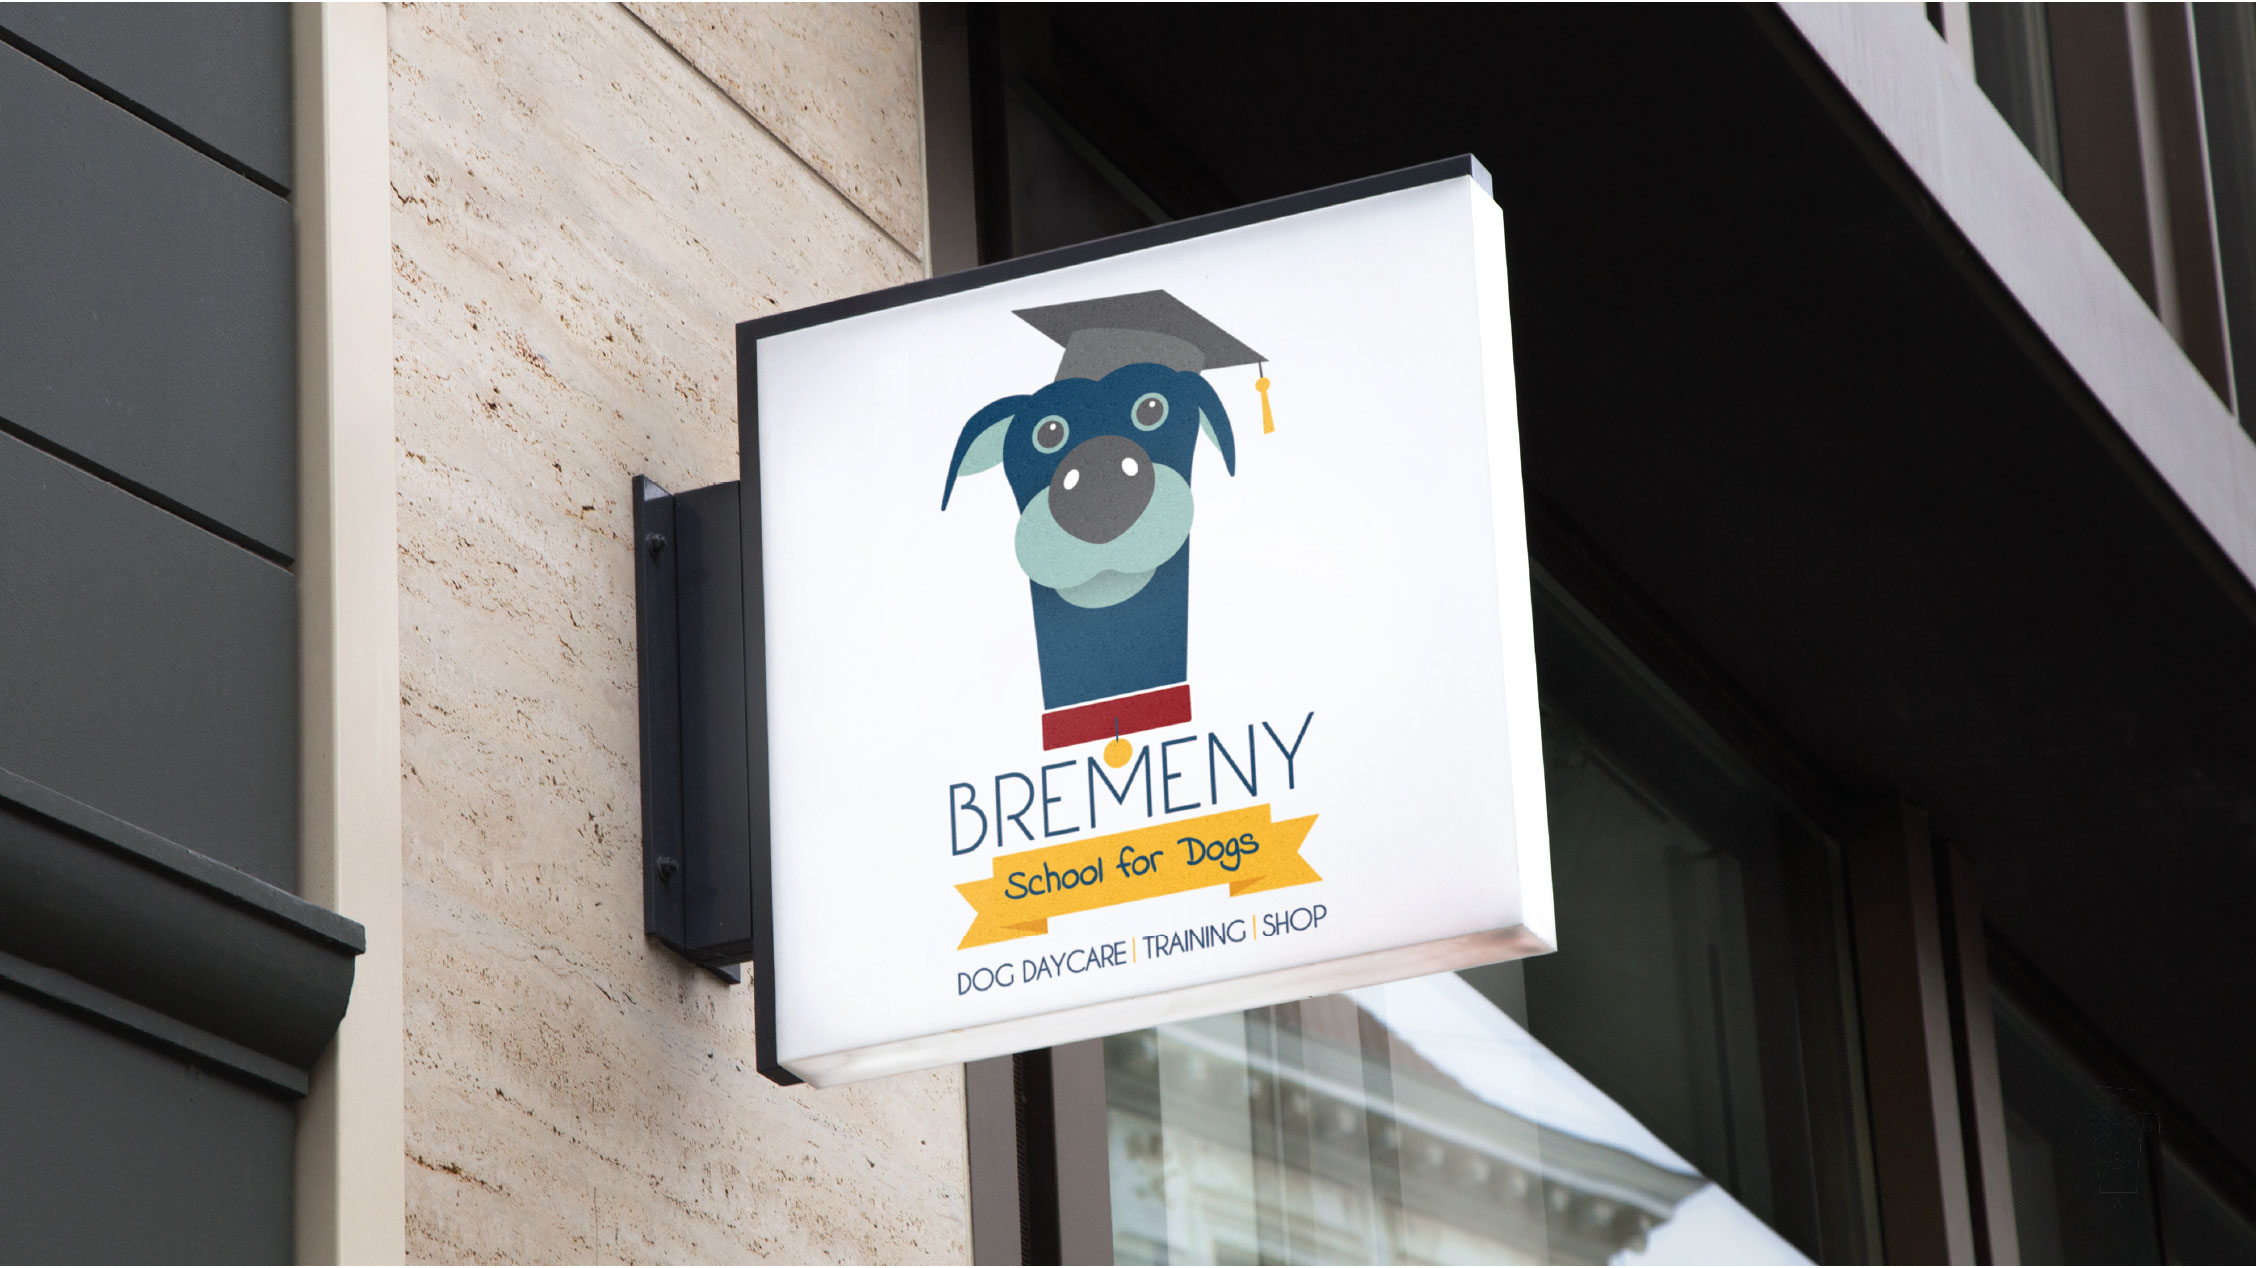 Bremeny School for Dogs Brand Design Galway